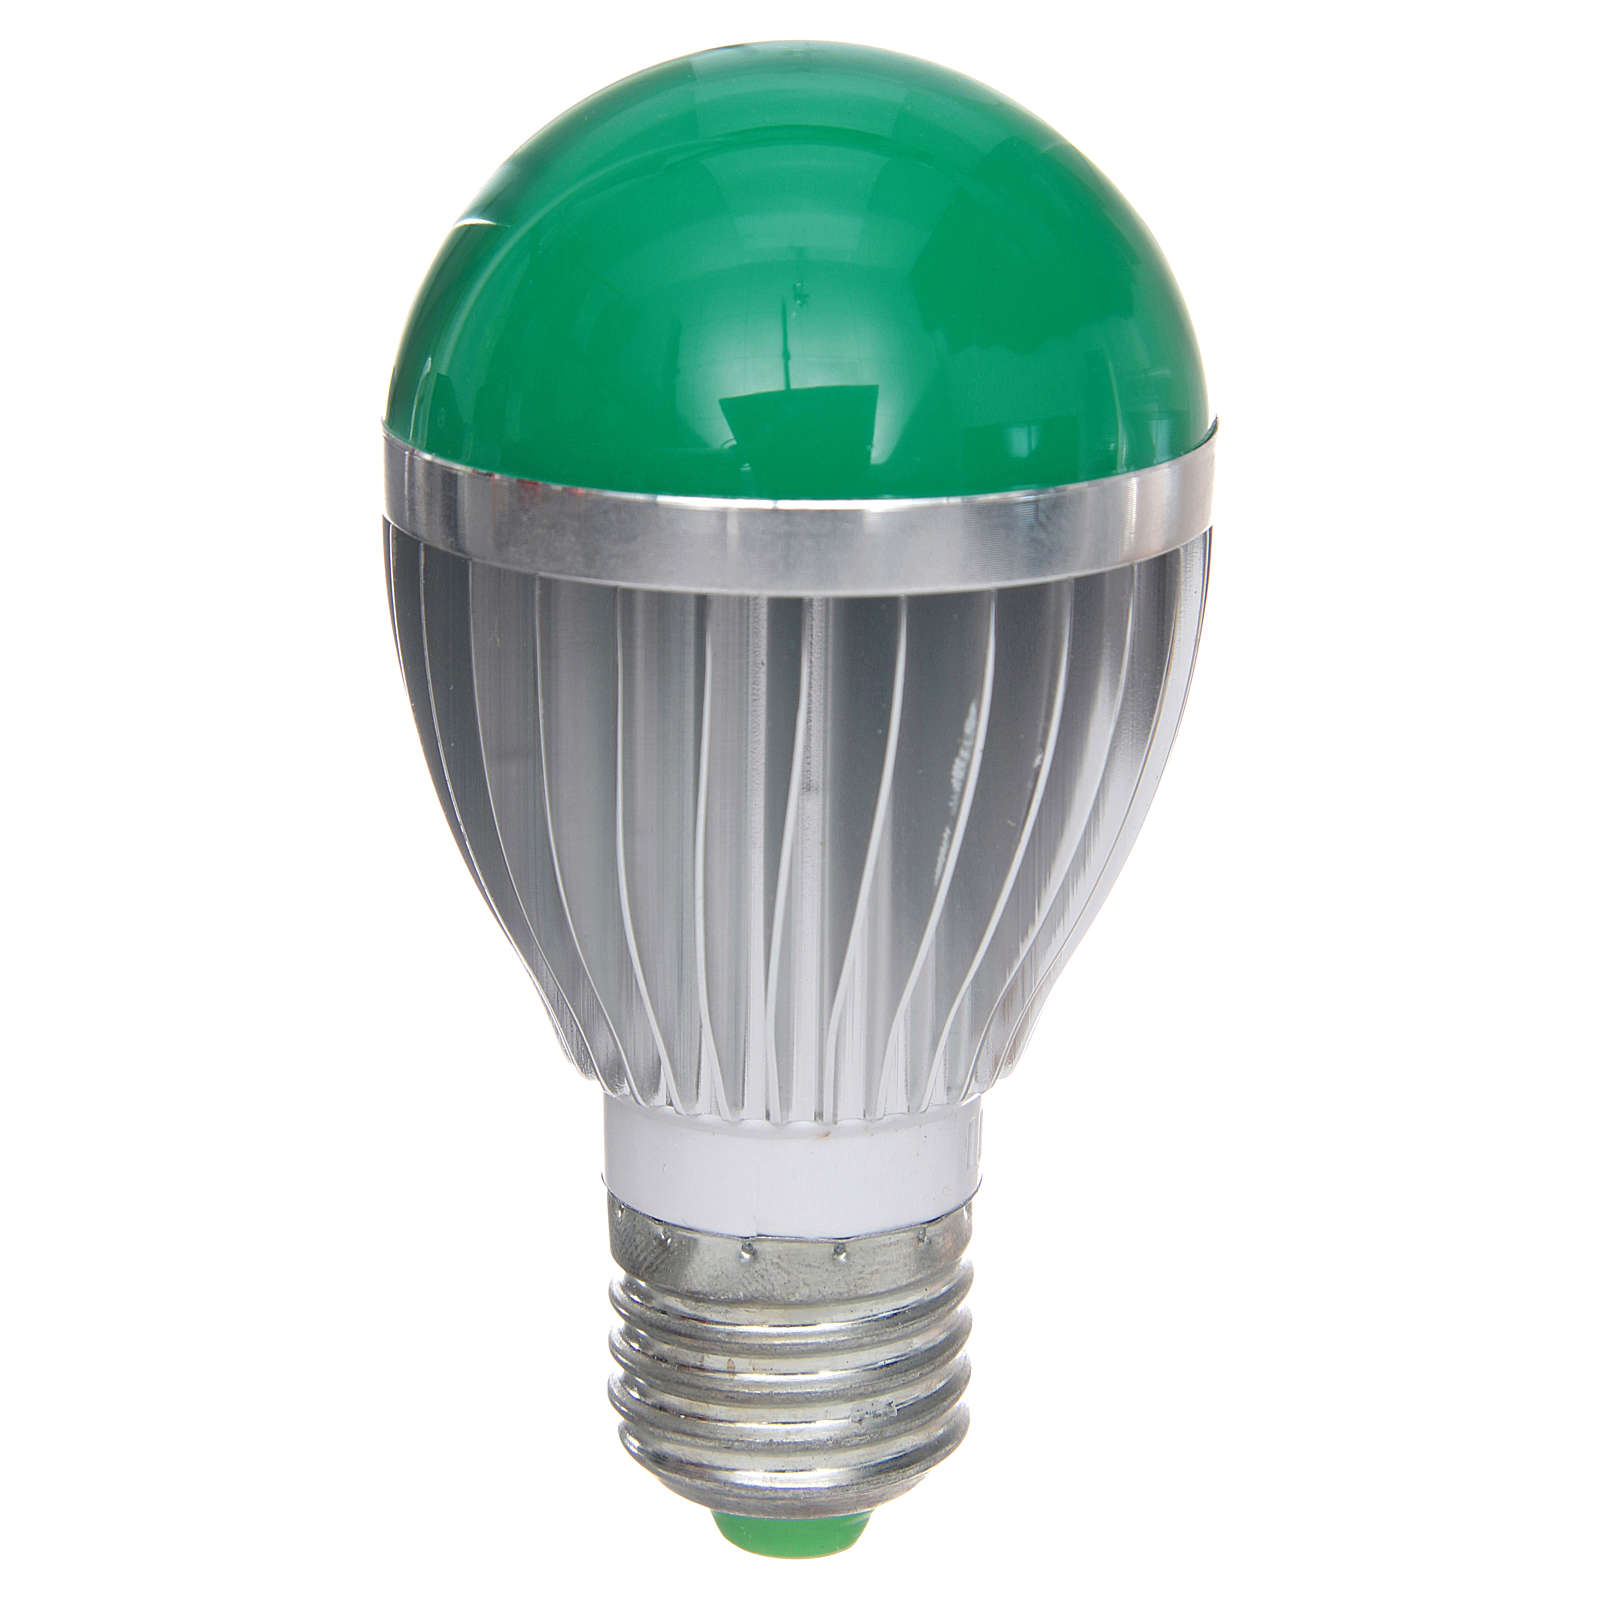 LED dimmerable, green light, 5W for nativities 4